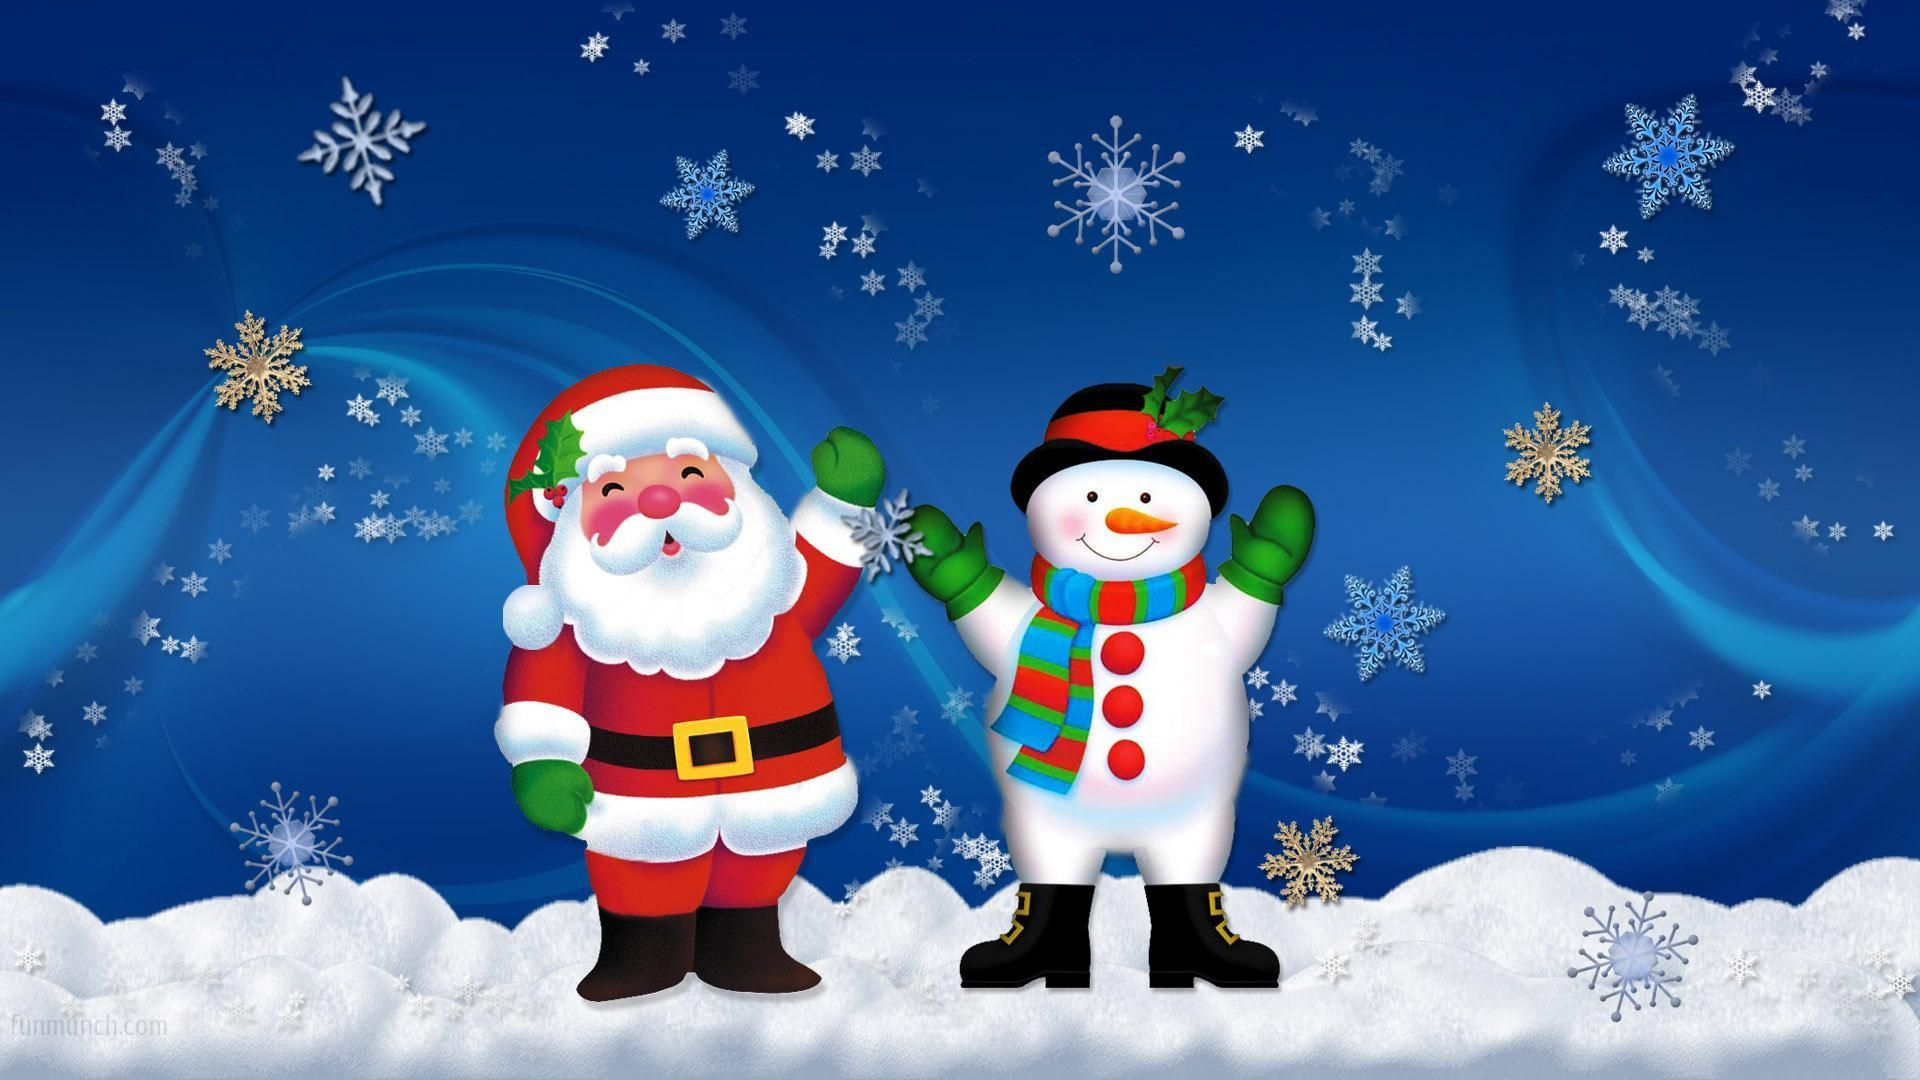 25 Best Colorful Christmas Wallpapers 2014